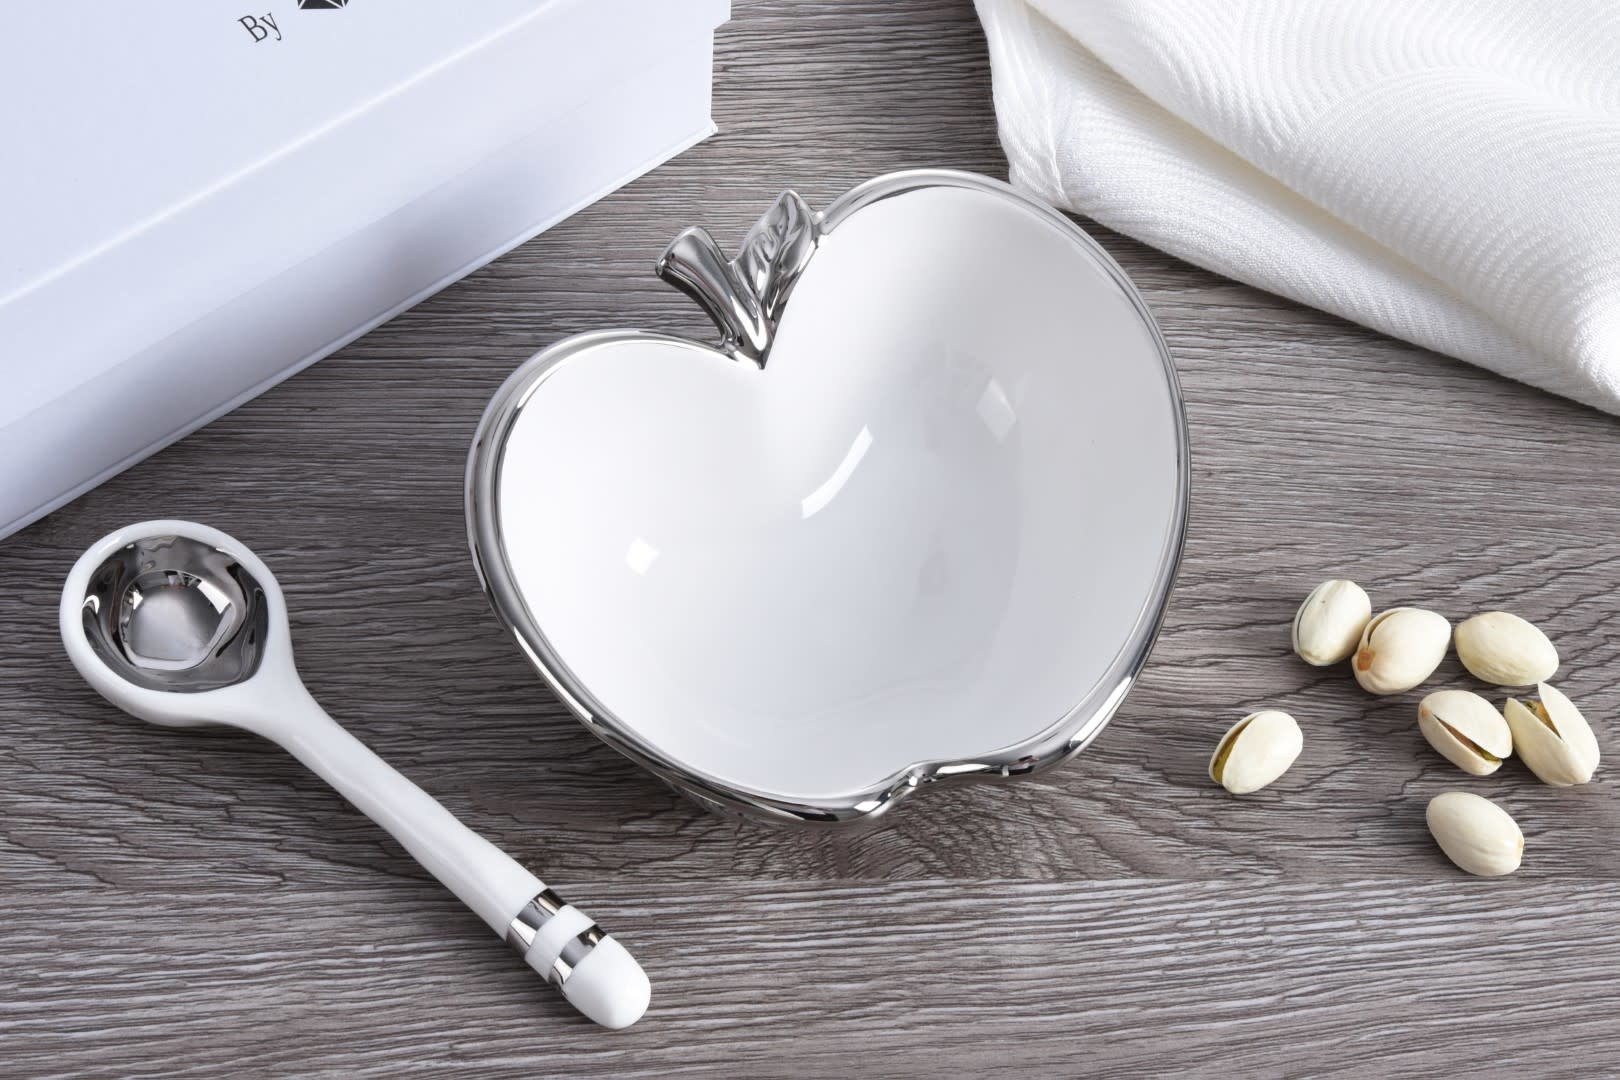 White/ Silver Apple Bowl and Spoon